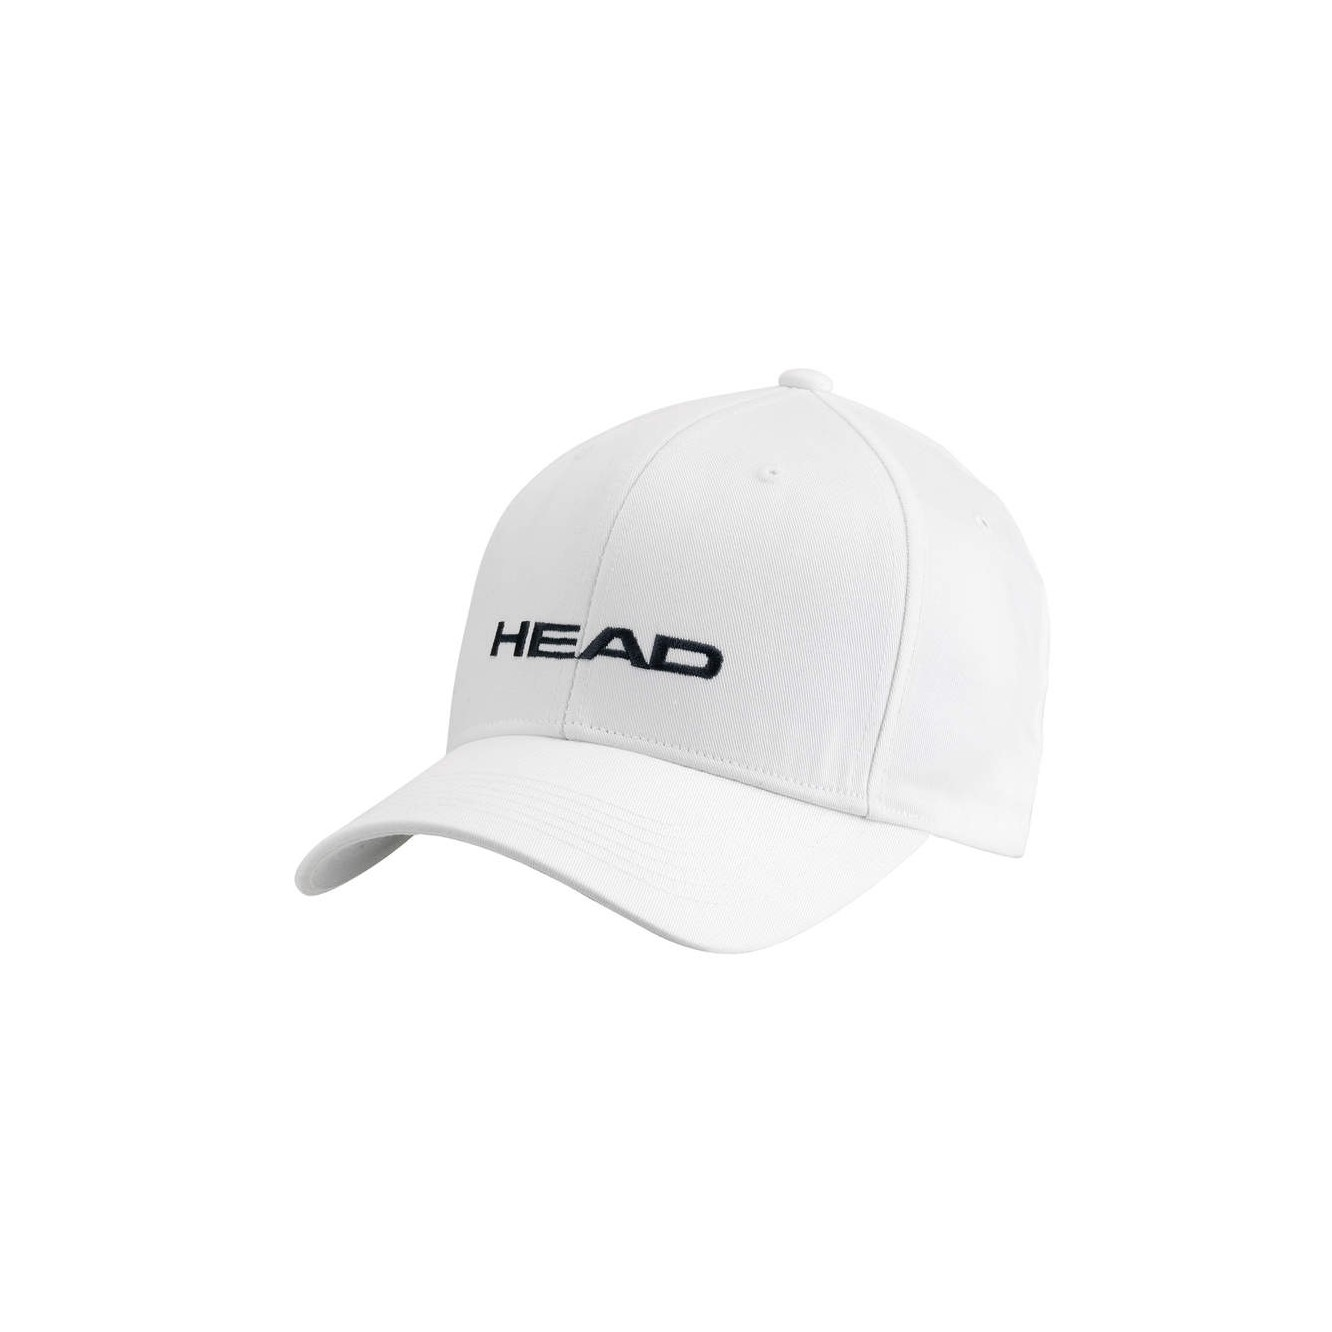 Gorra Promotion Head blanco